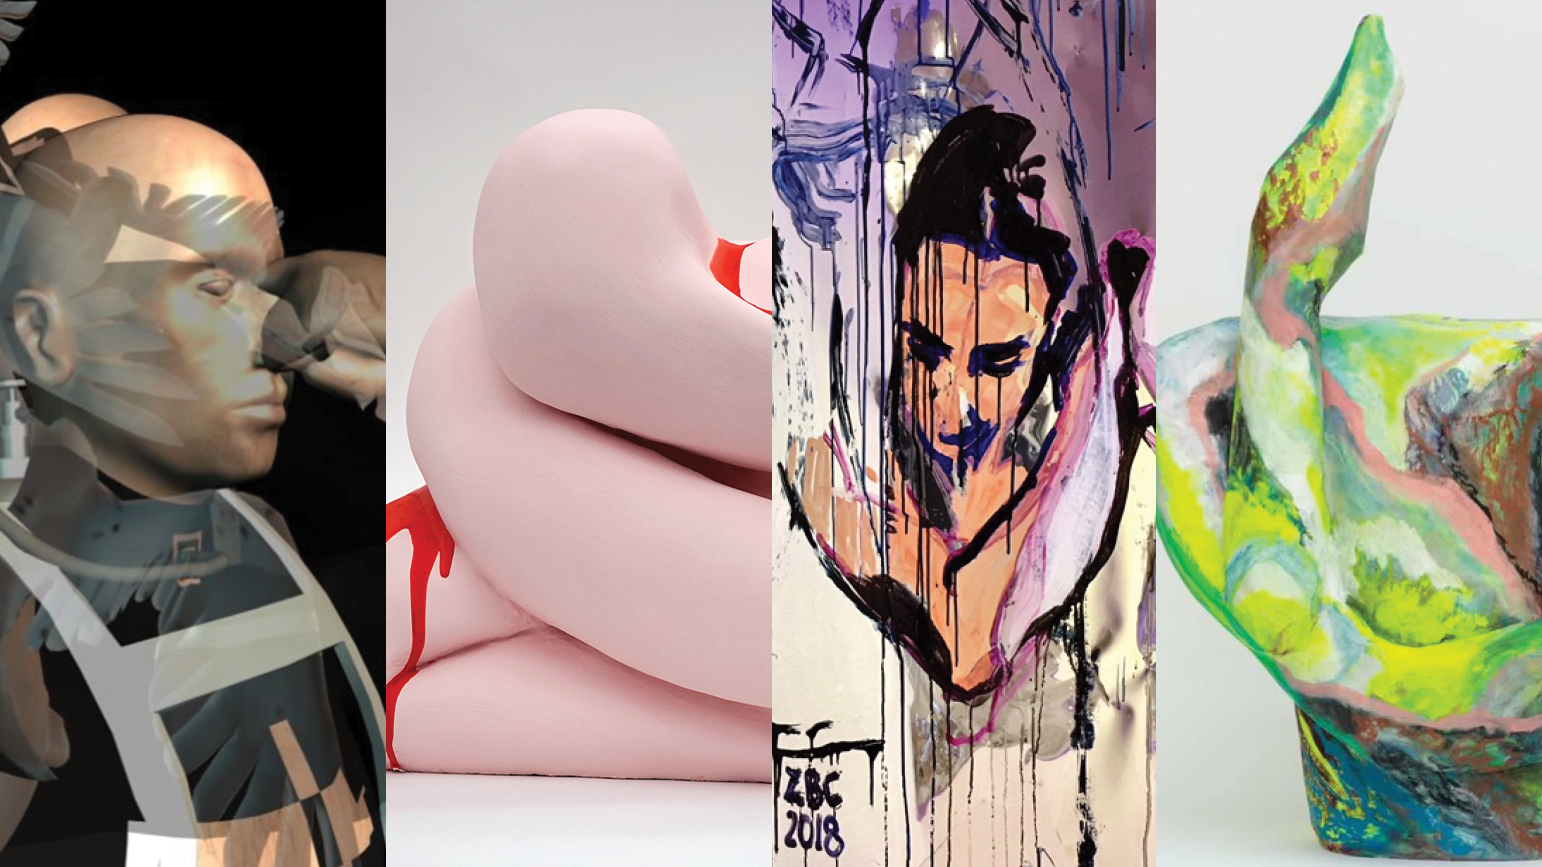 Four image: 1 - Digital image of a man in gold, white, and black, 2 - pink sculpture abstract sculpture with drips of red, 3- painting of a woman 4- abstract sculpture in green, pink, blue, and other colors